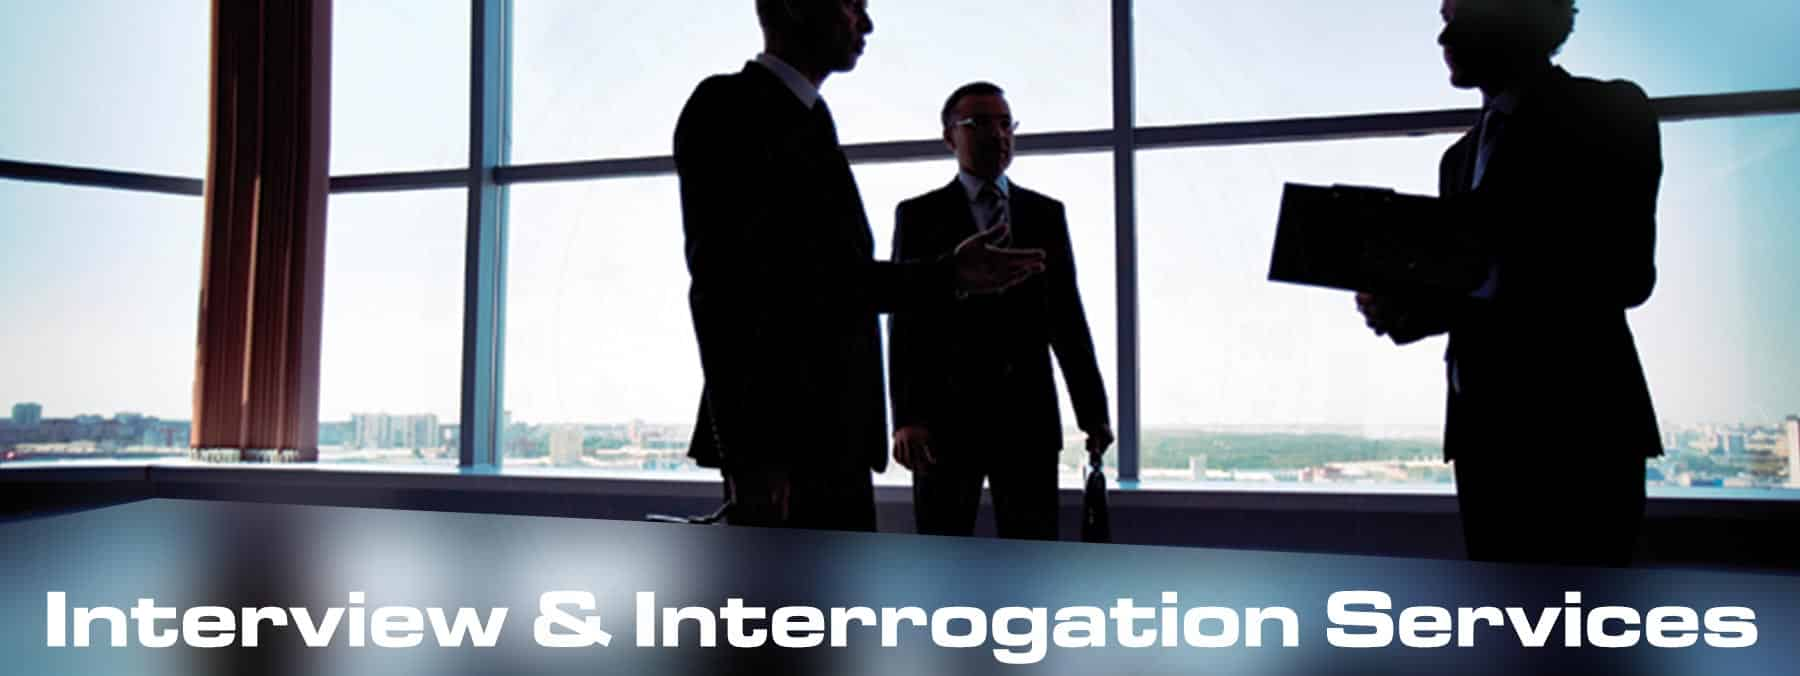 Interview & Interrogation services from Martin Investigative Services